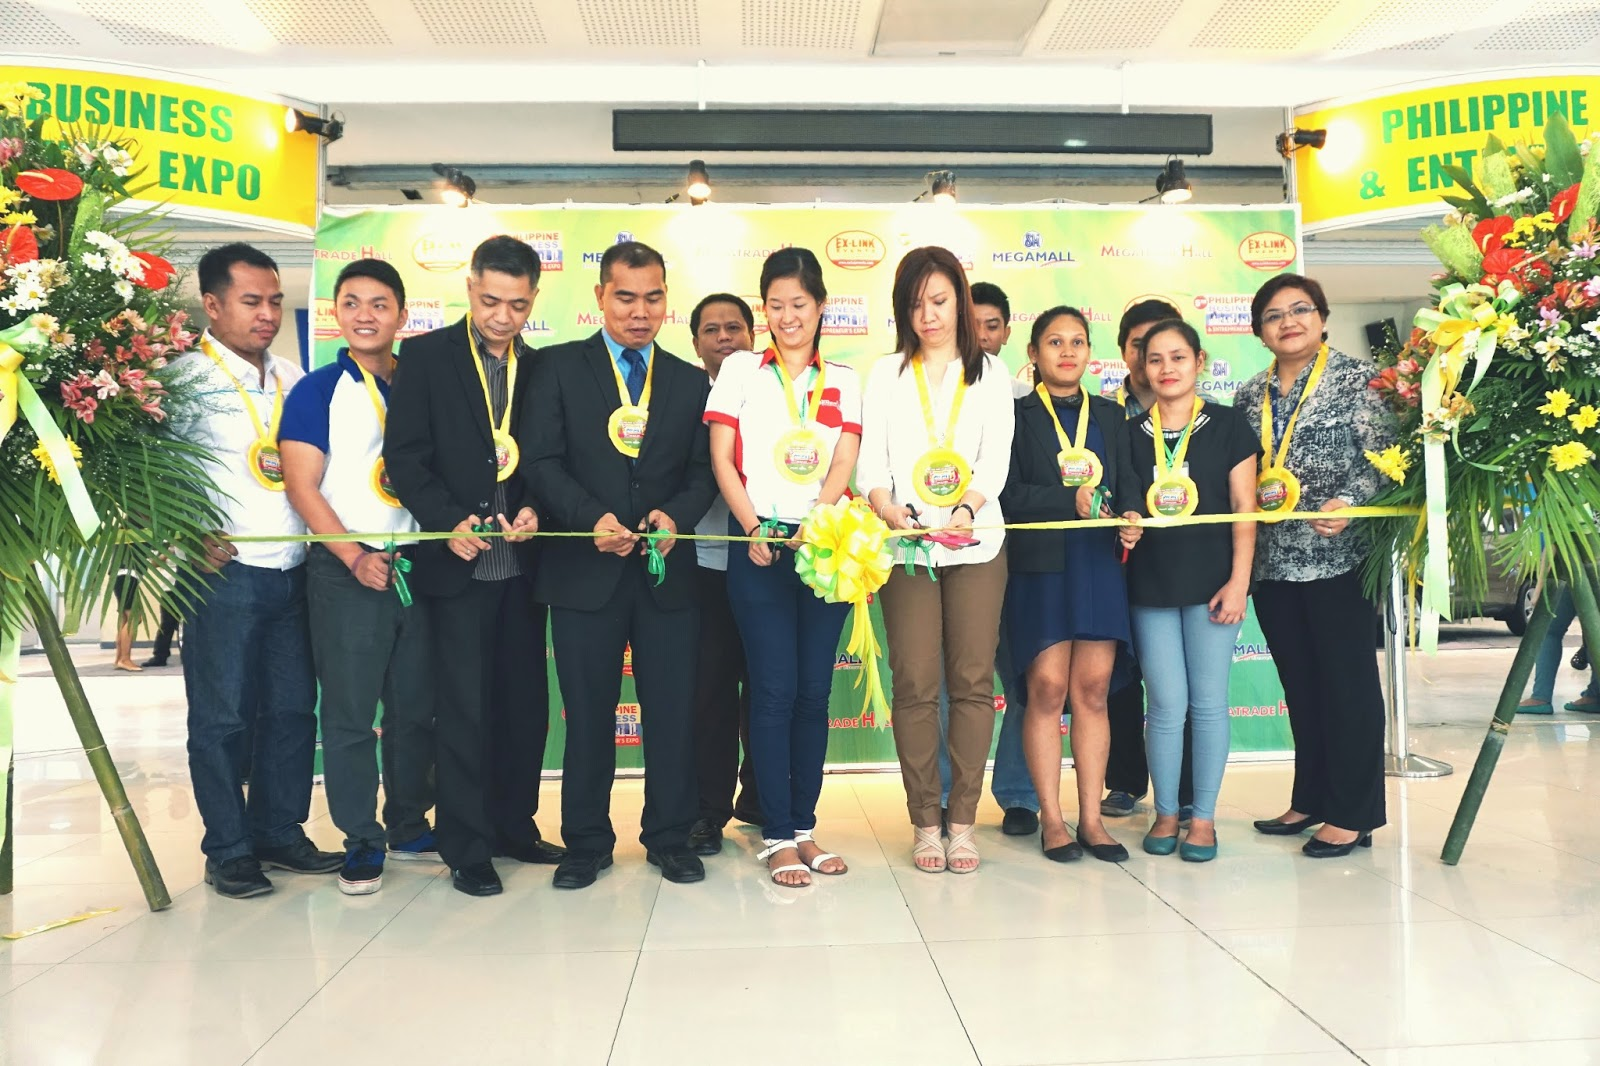 5th Philippine Business and Entrepreneurs Expo (PBEX) - Opening Ceremony